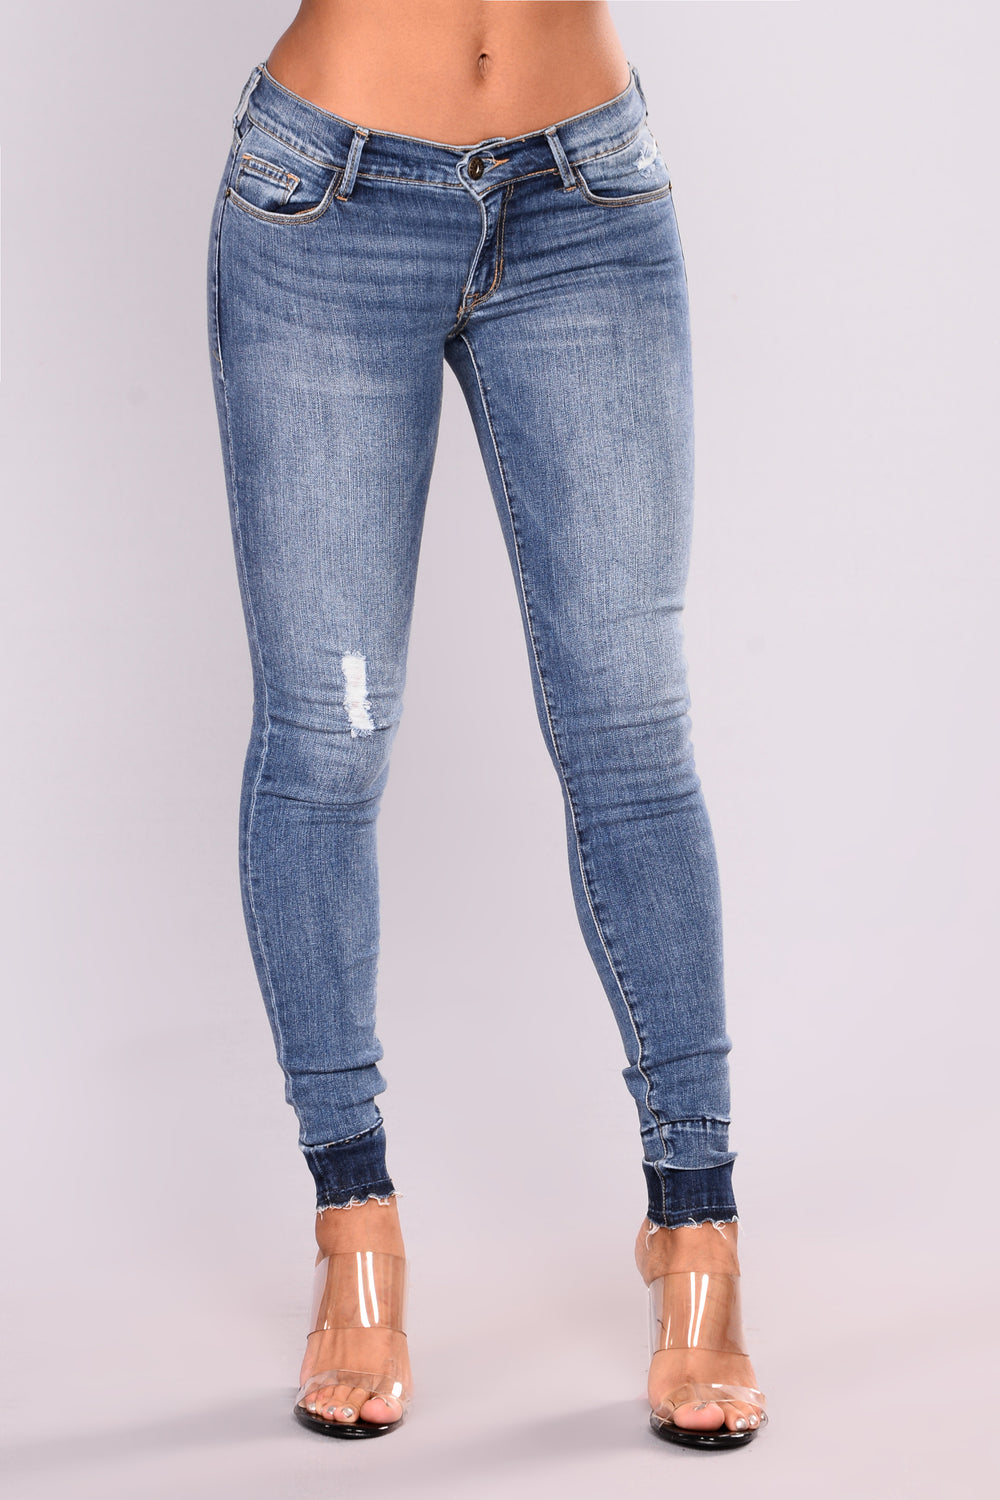 Amie Released Hem Skinny Jeans - Medium Wash